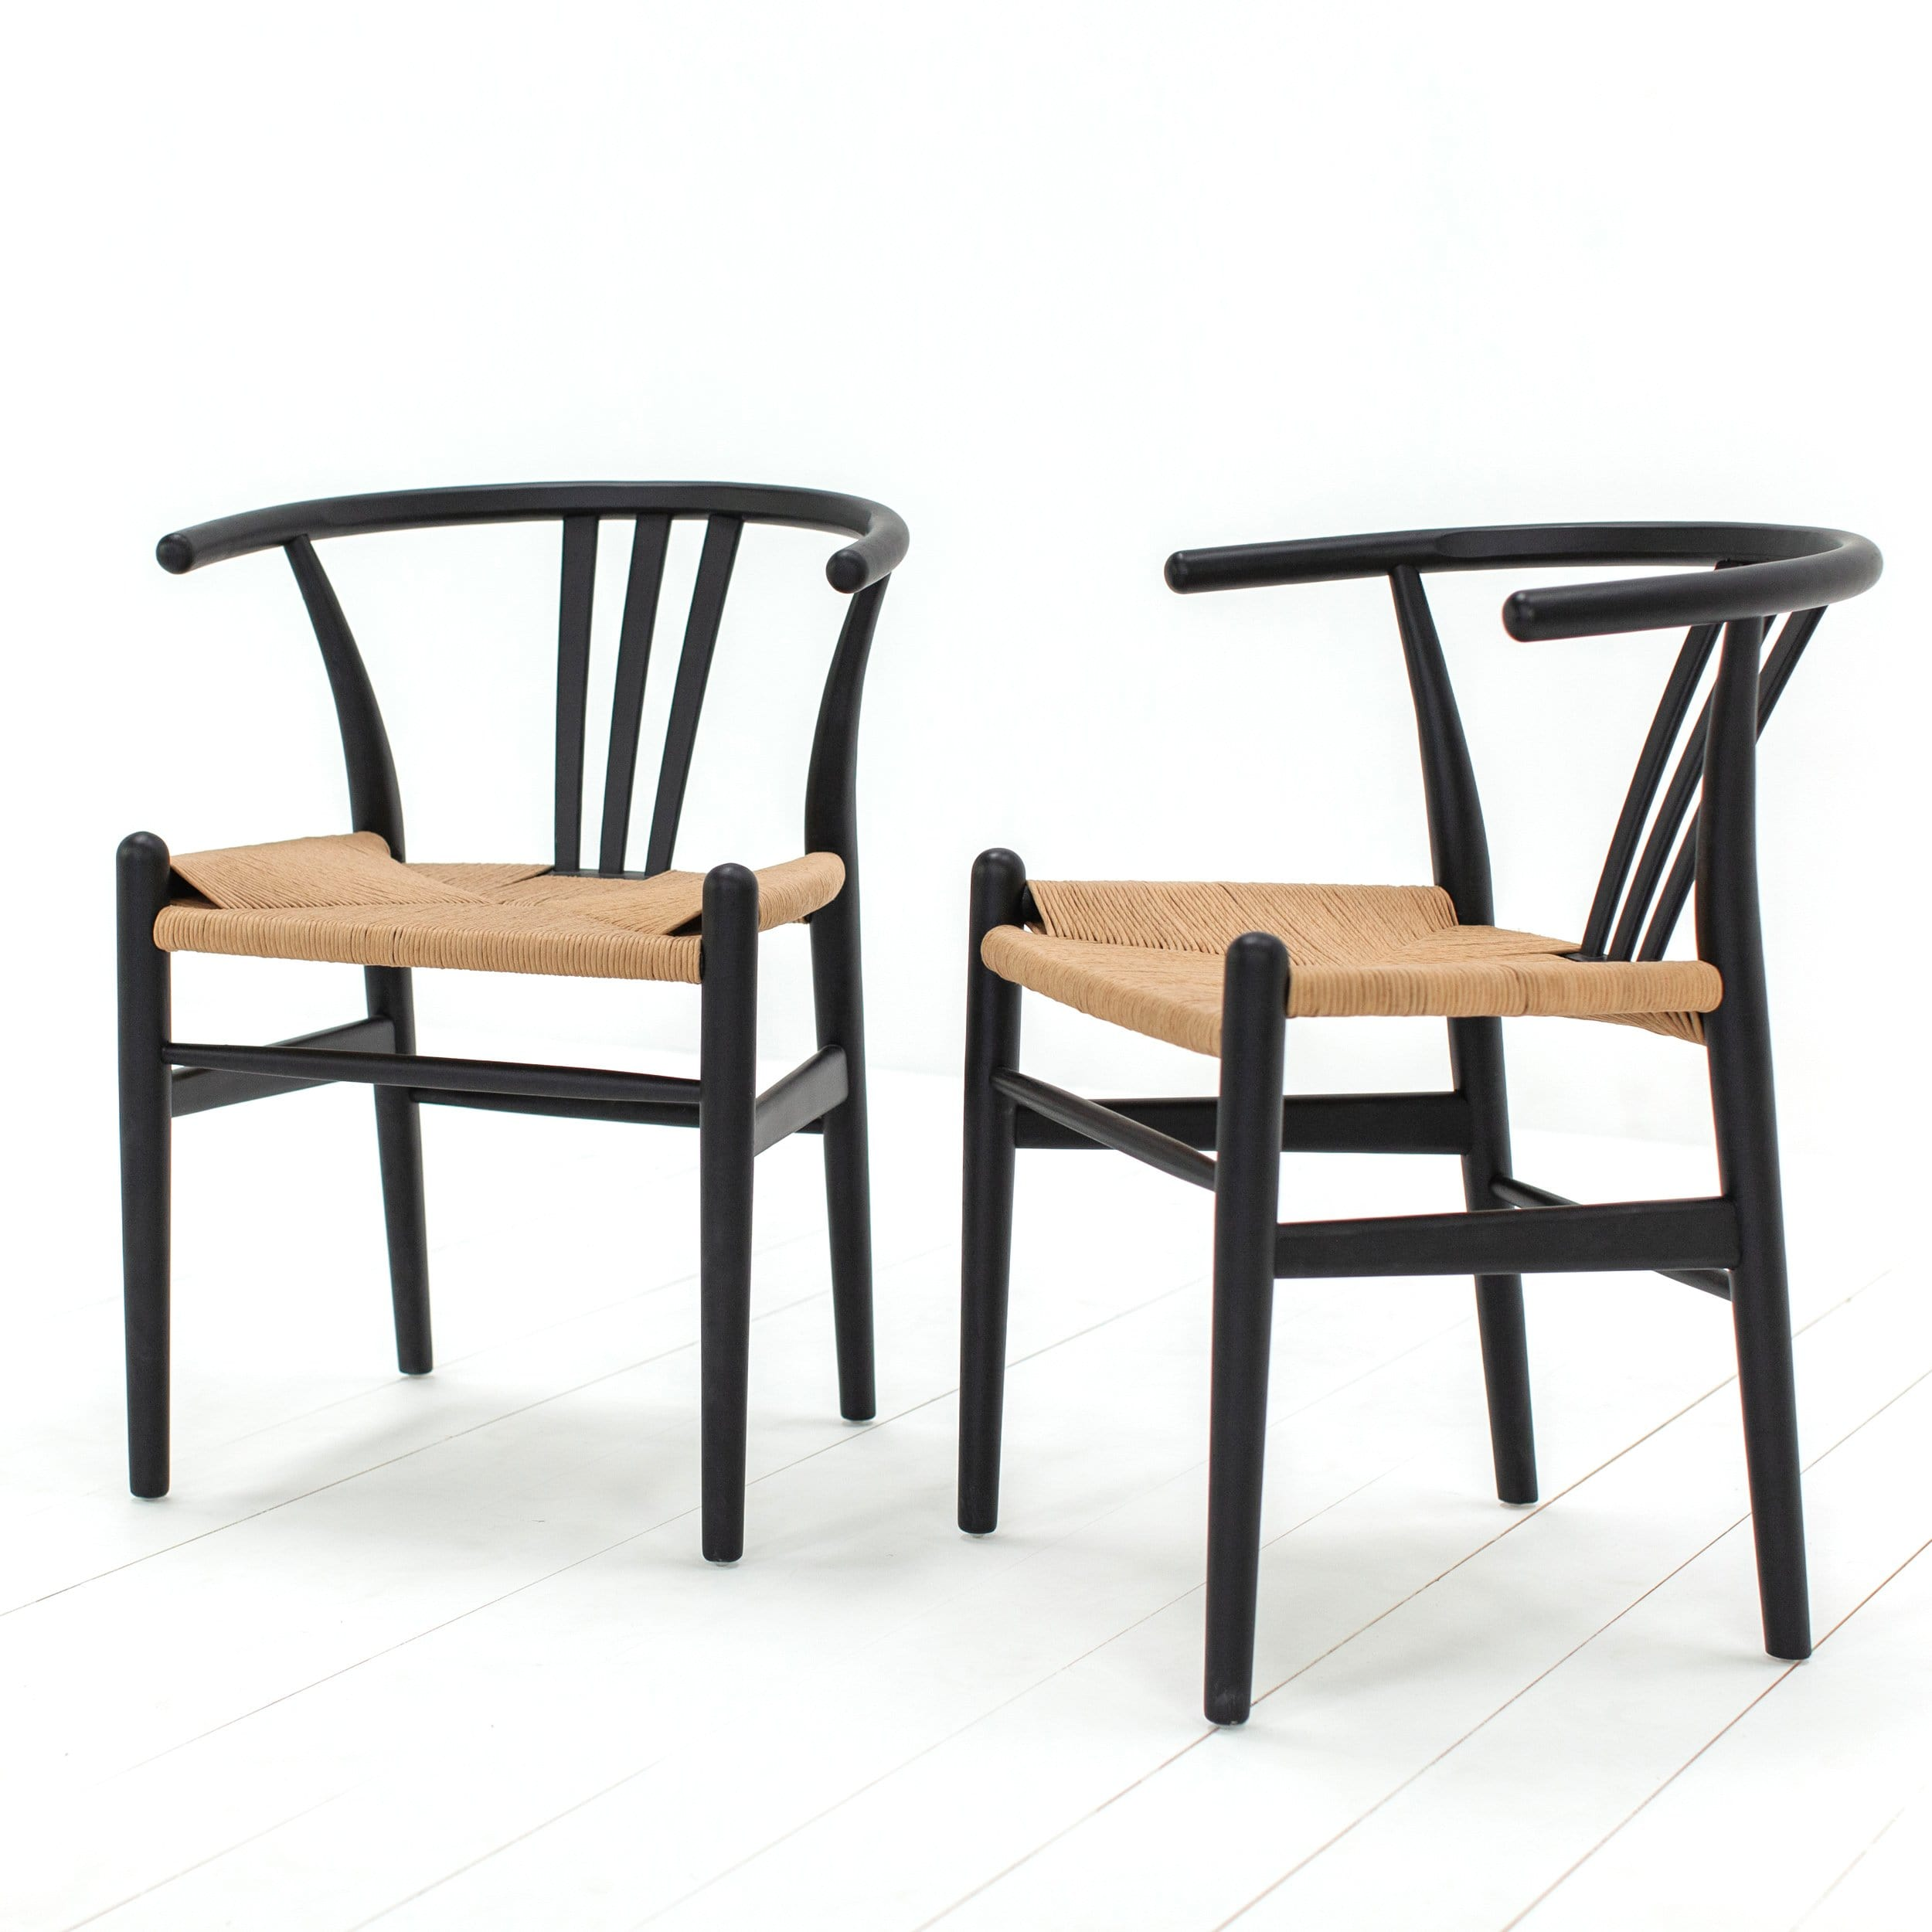 A Pair of Belsford Chairs - Farmhouse Table Company